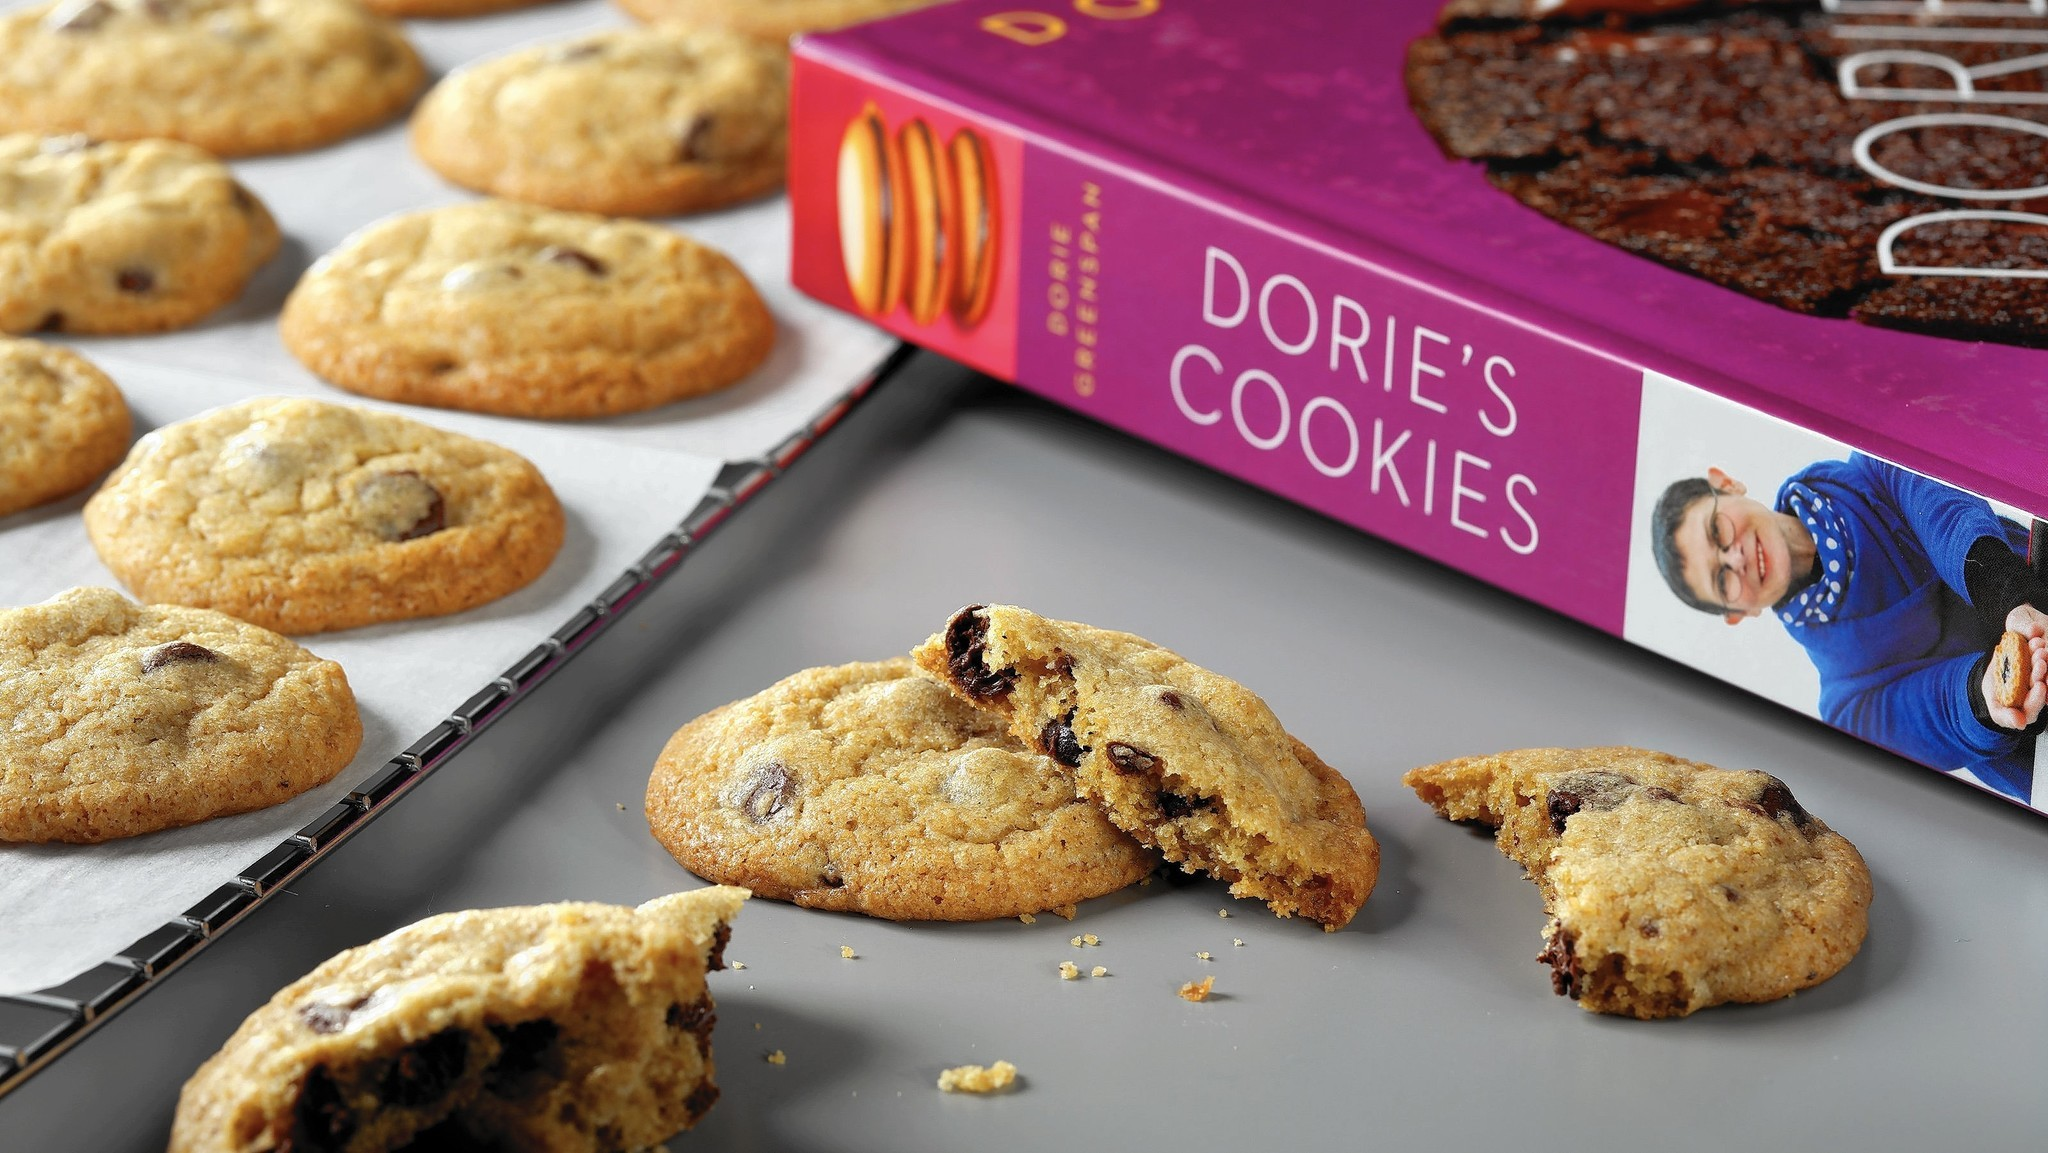 Dorie Greenspan's newest chocolate chip cookie recipe is now her favorite